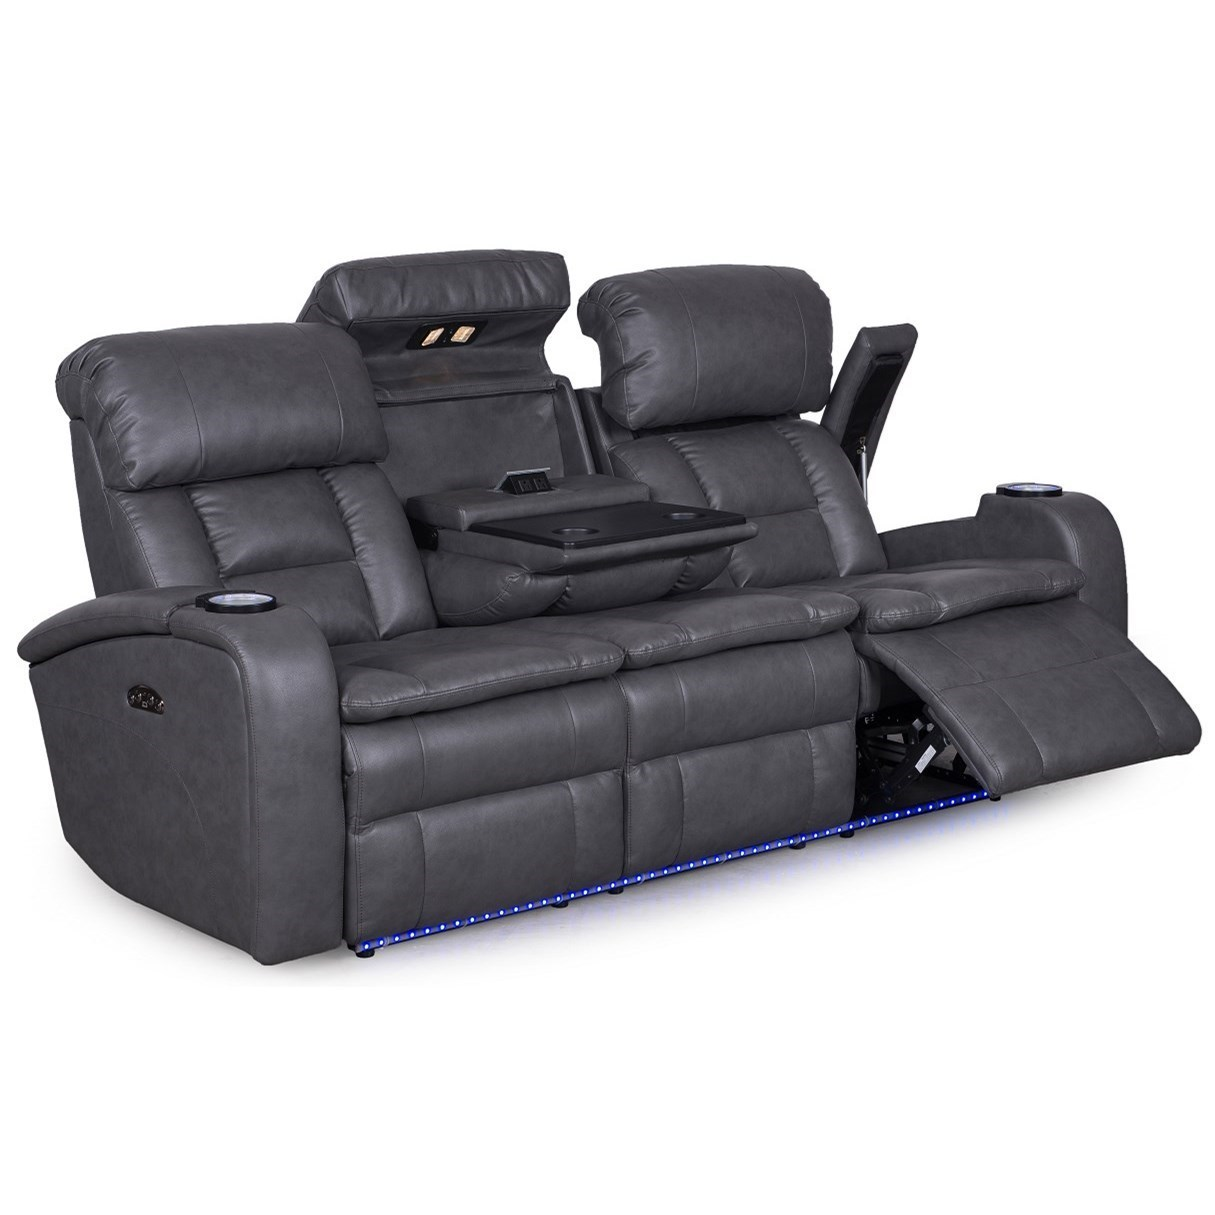 Recliner theater our recliners - Furniture image ...